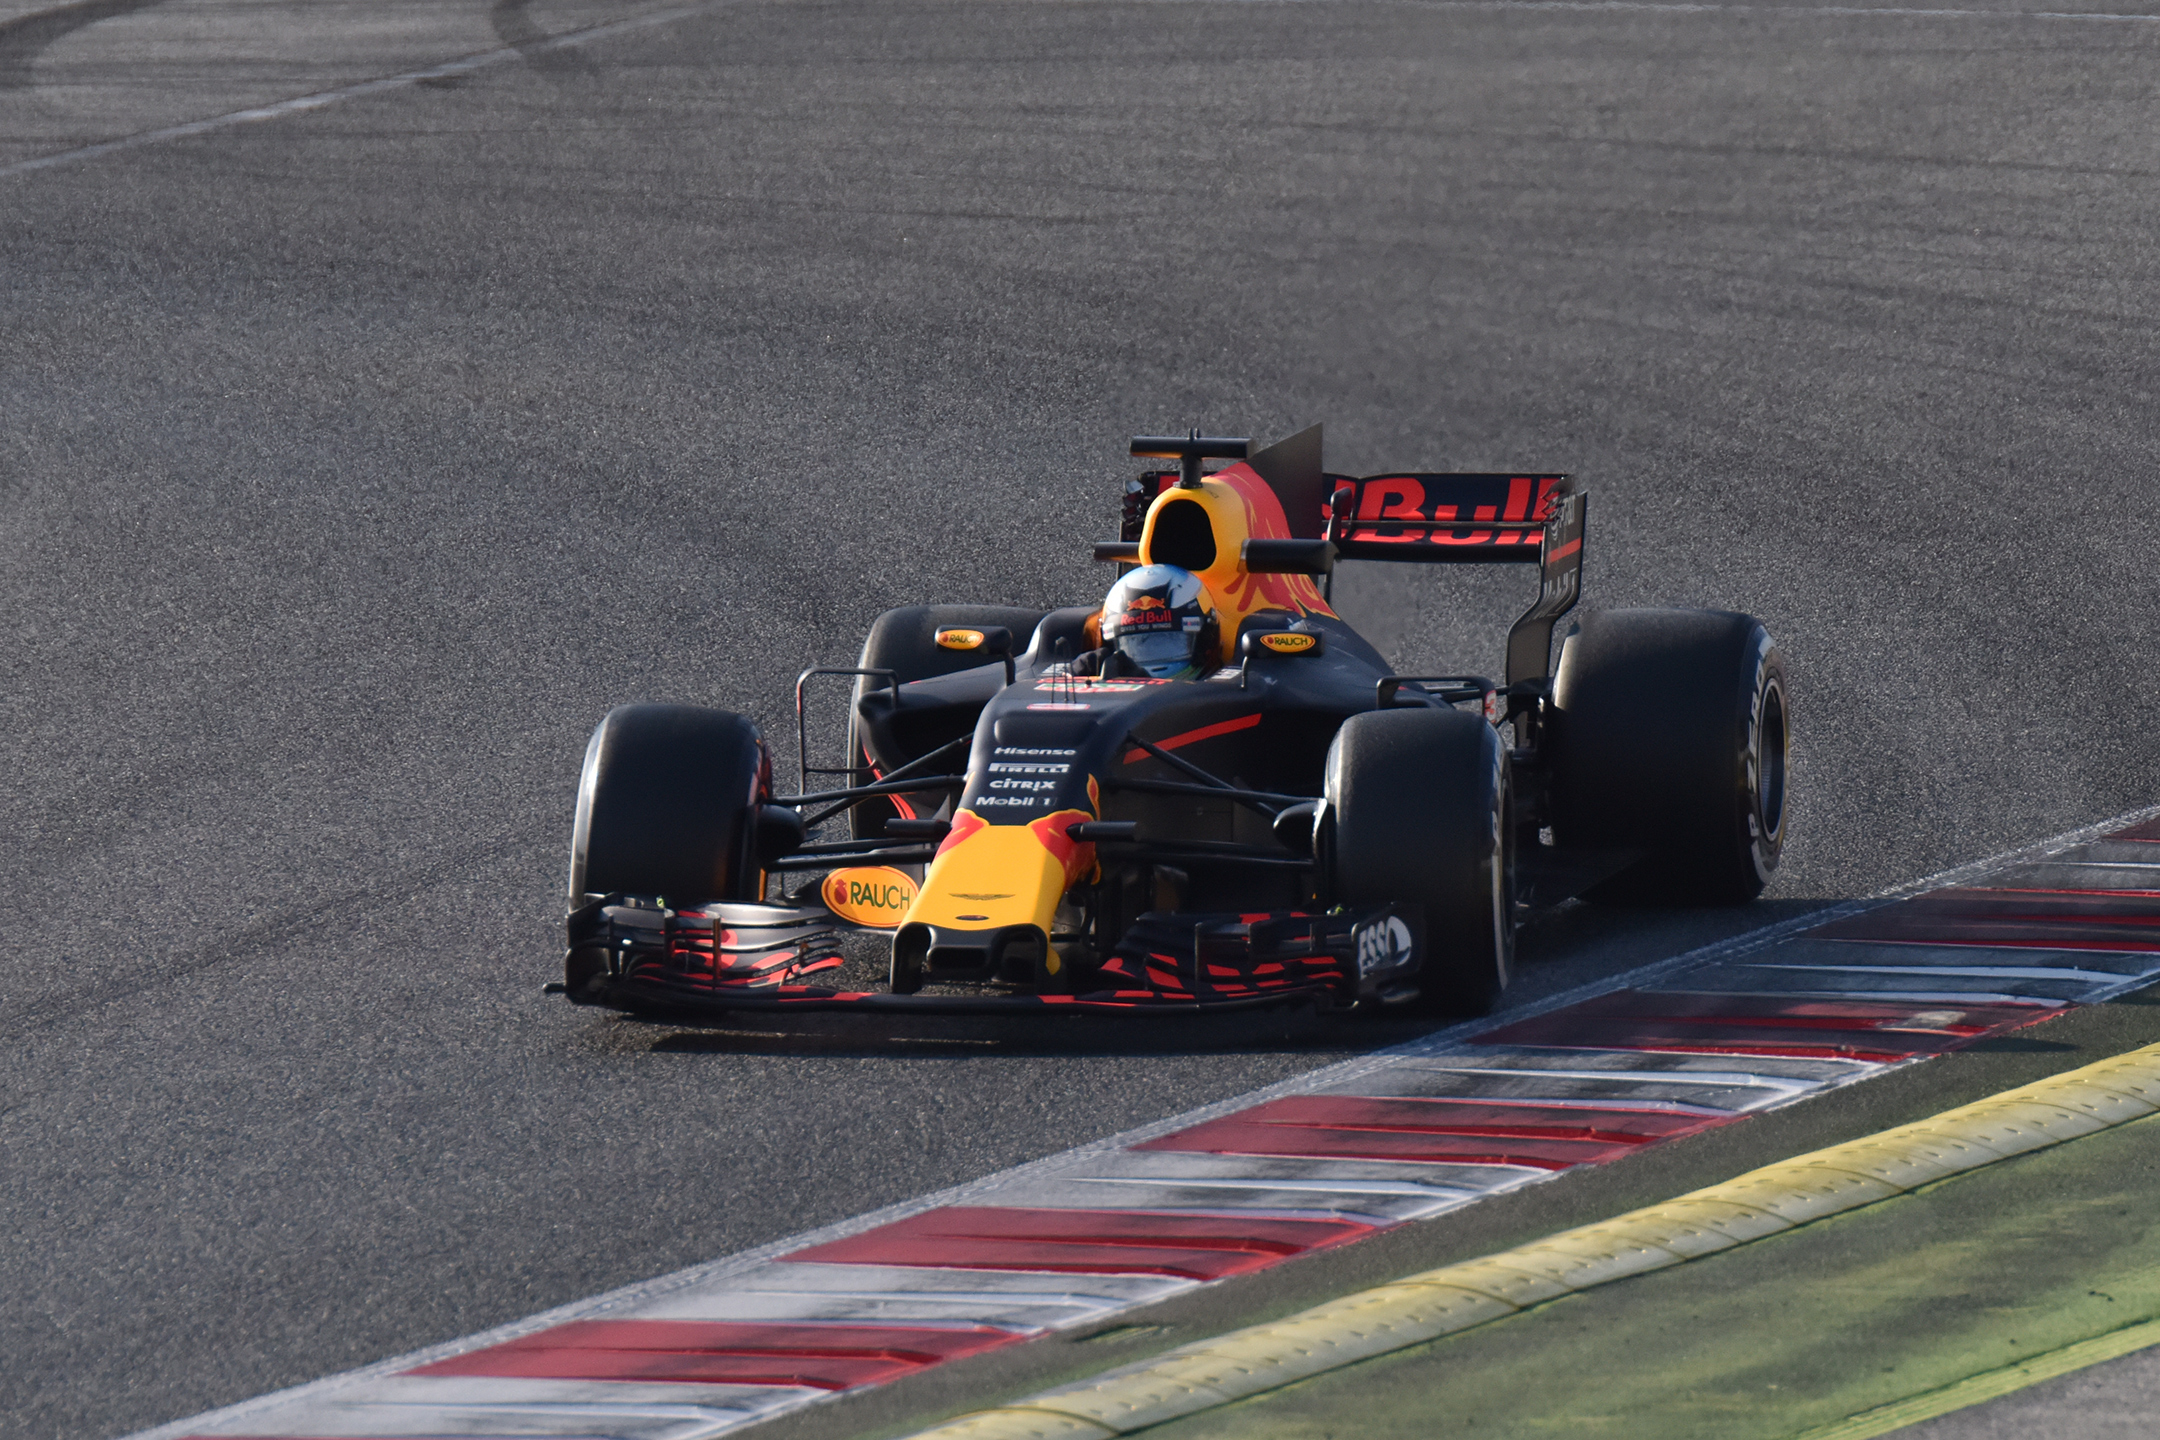 F1 Testday track BCN-CAT - front - 2017 - Red Bull Racing RB13 - photo by Jacques Denis - Team DESIGNMOTEUR